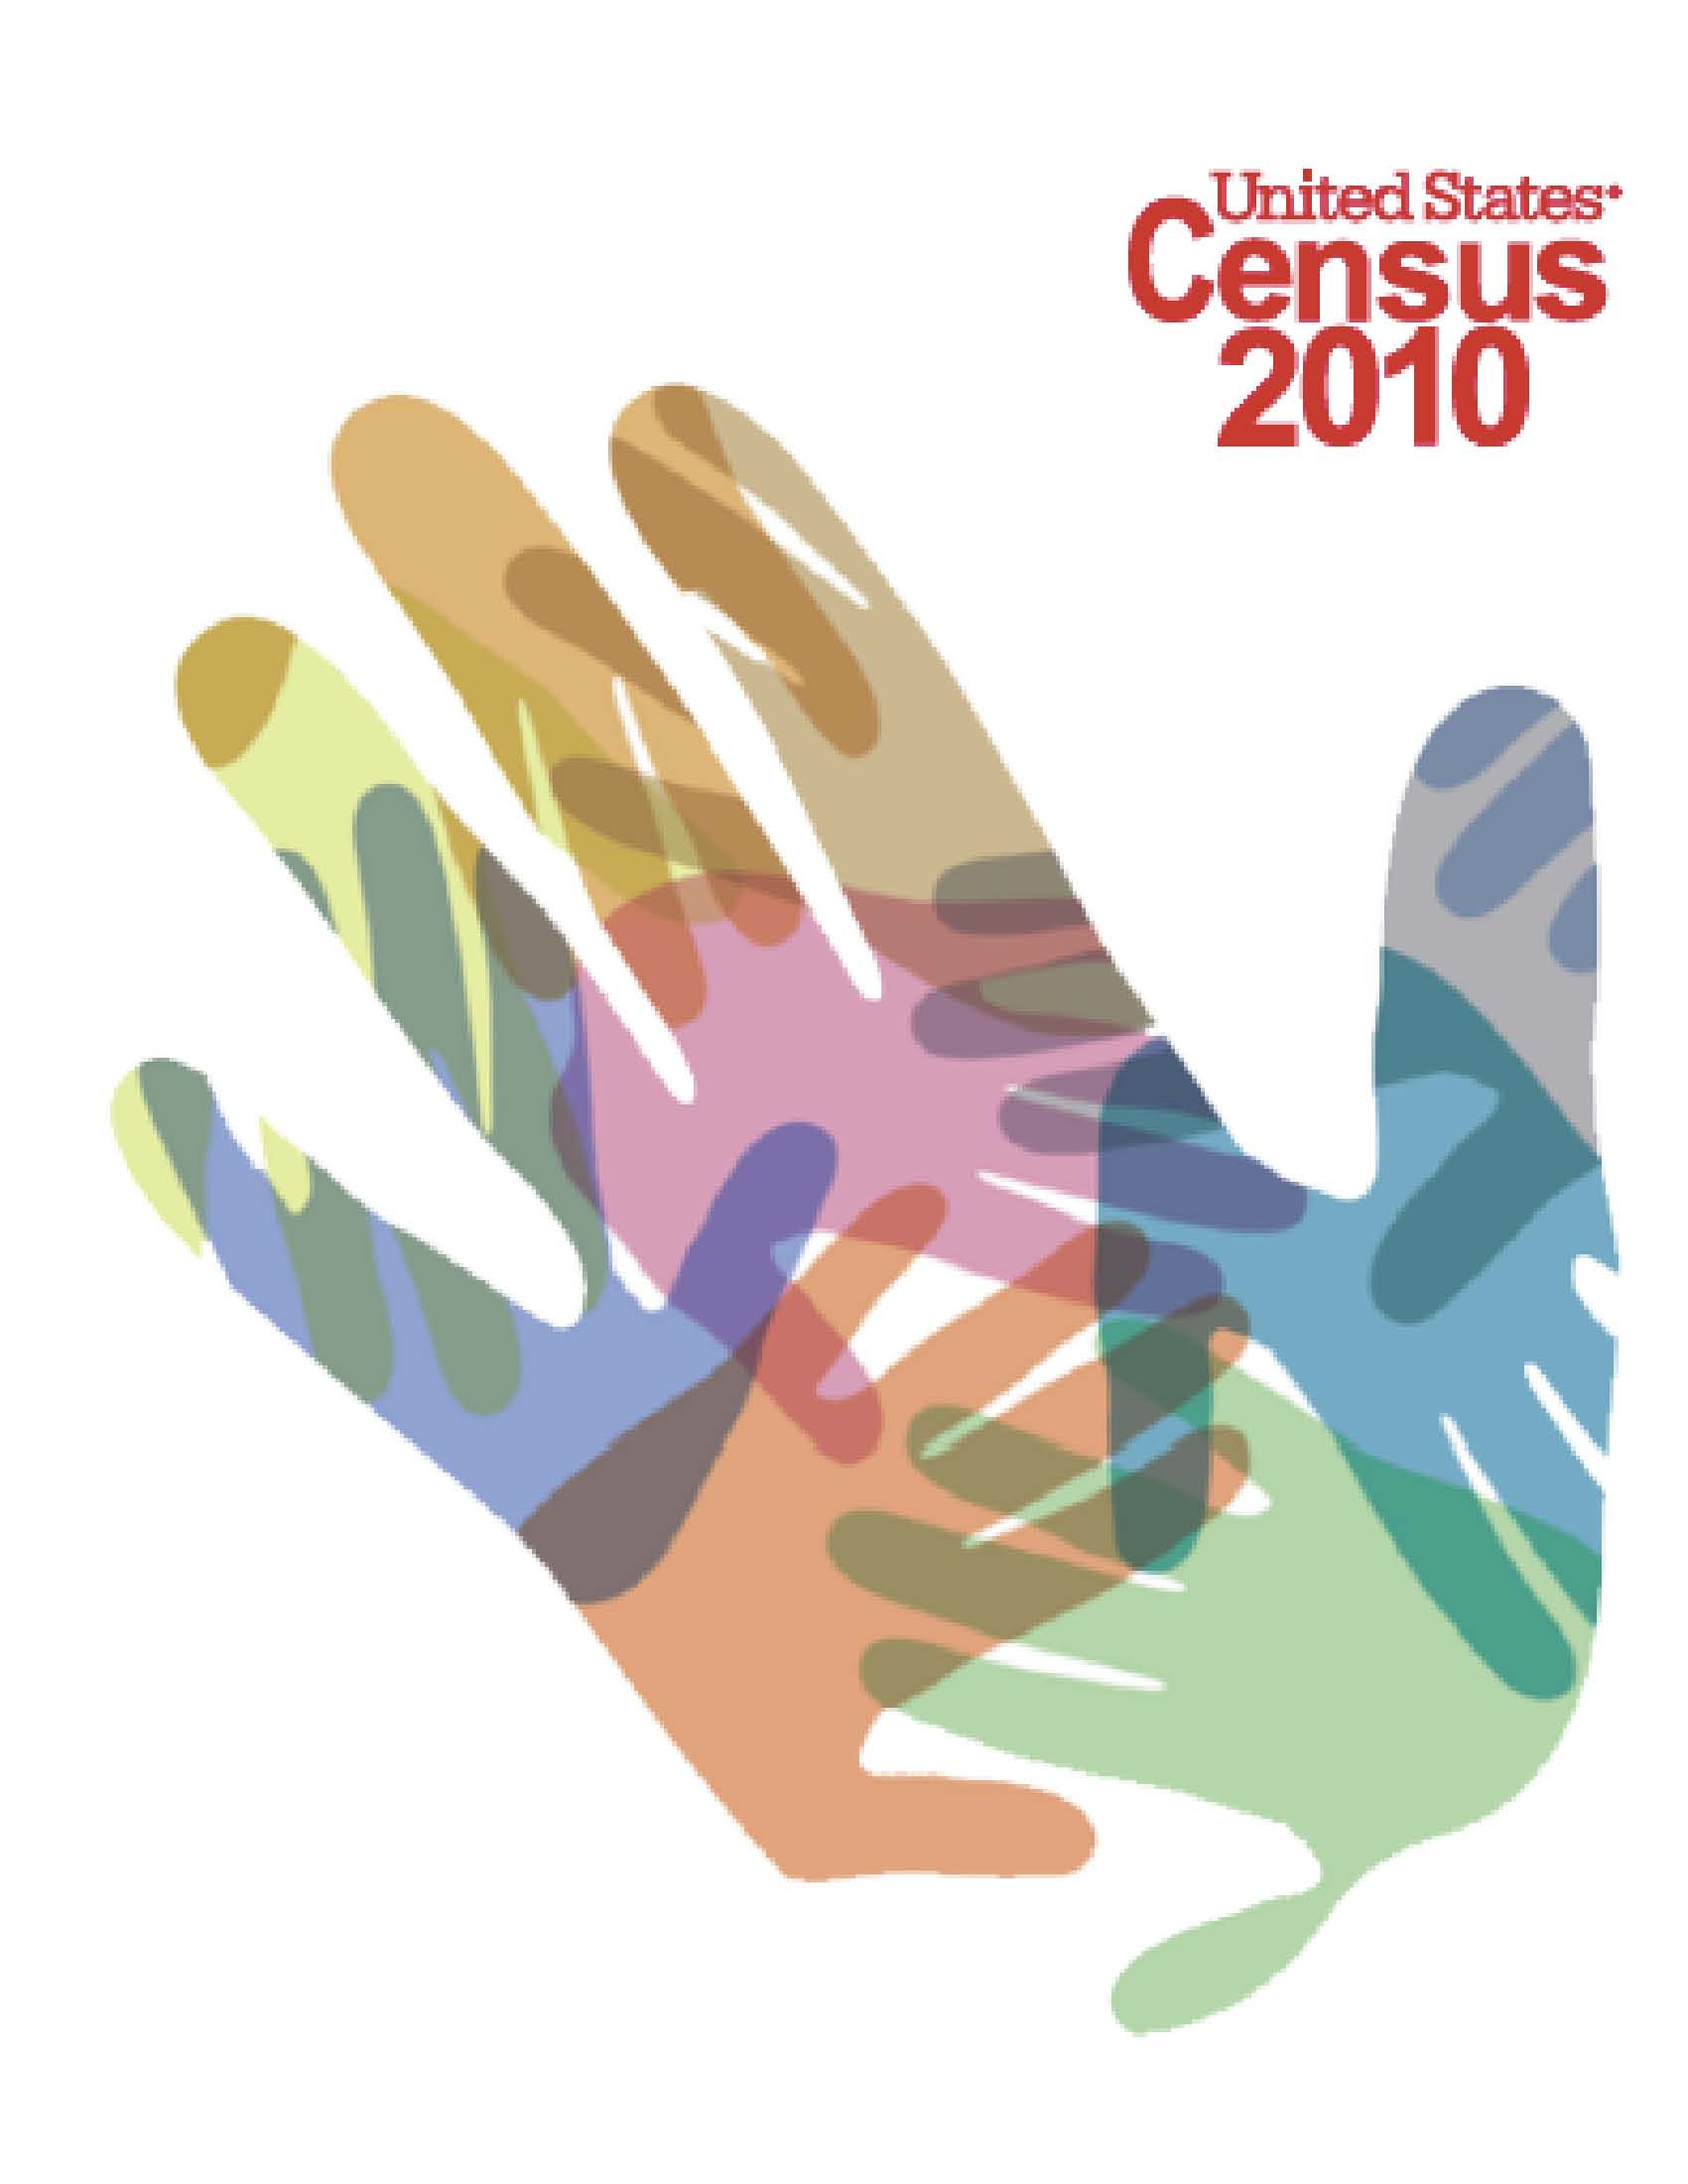 It's in Our Hands - the 2010 U.S. Census